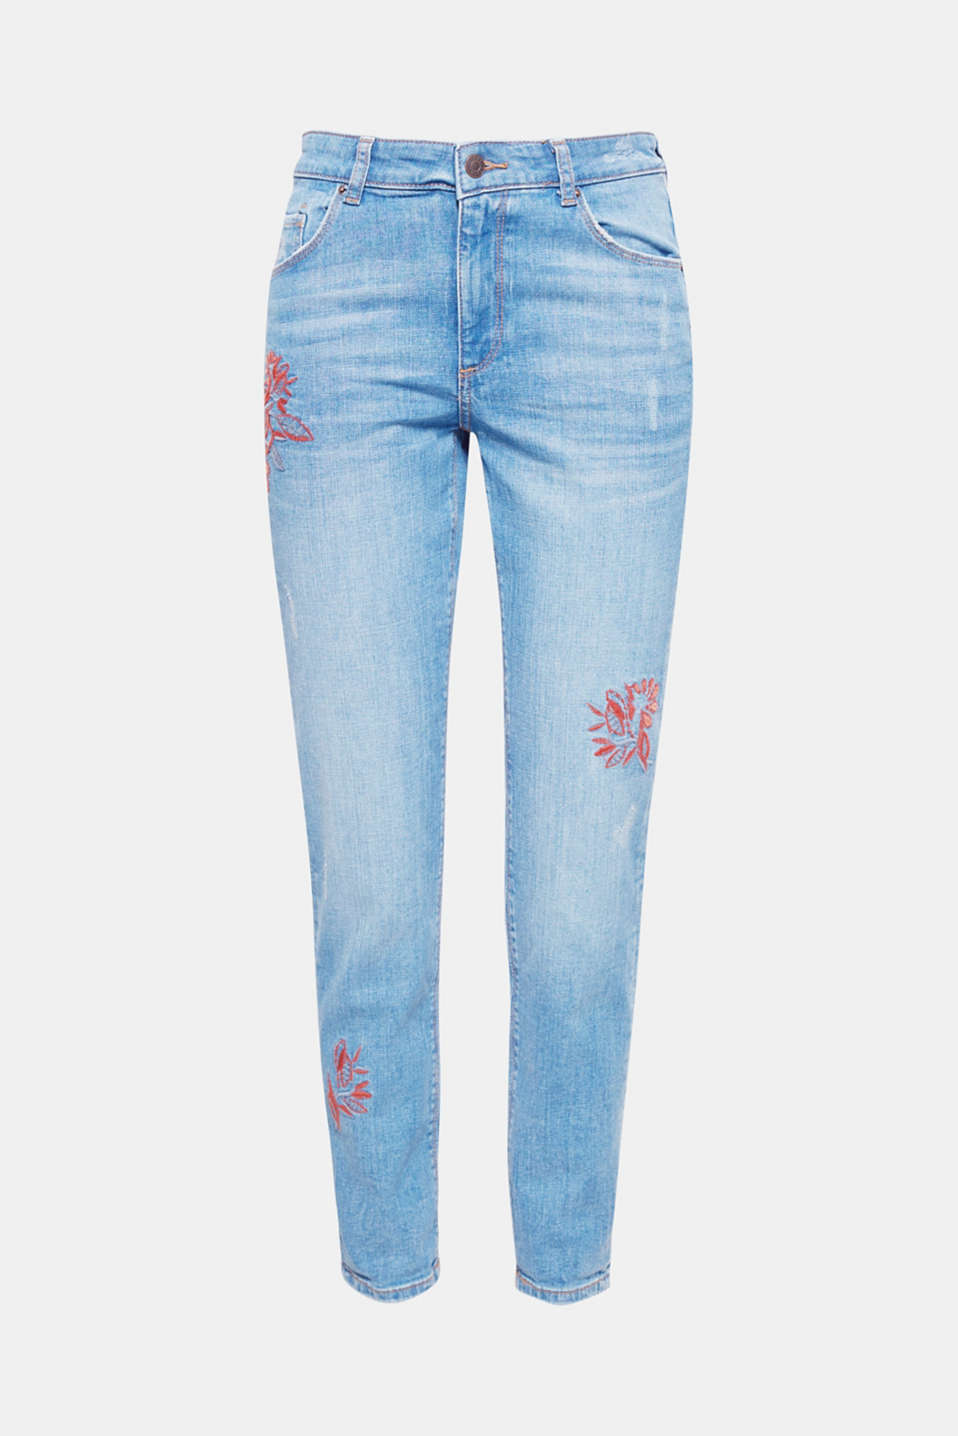 A casual take on embroidery: perhaps as a lavish floral motif on stretch jeans with a loose cut and subtle vintage effects!